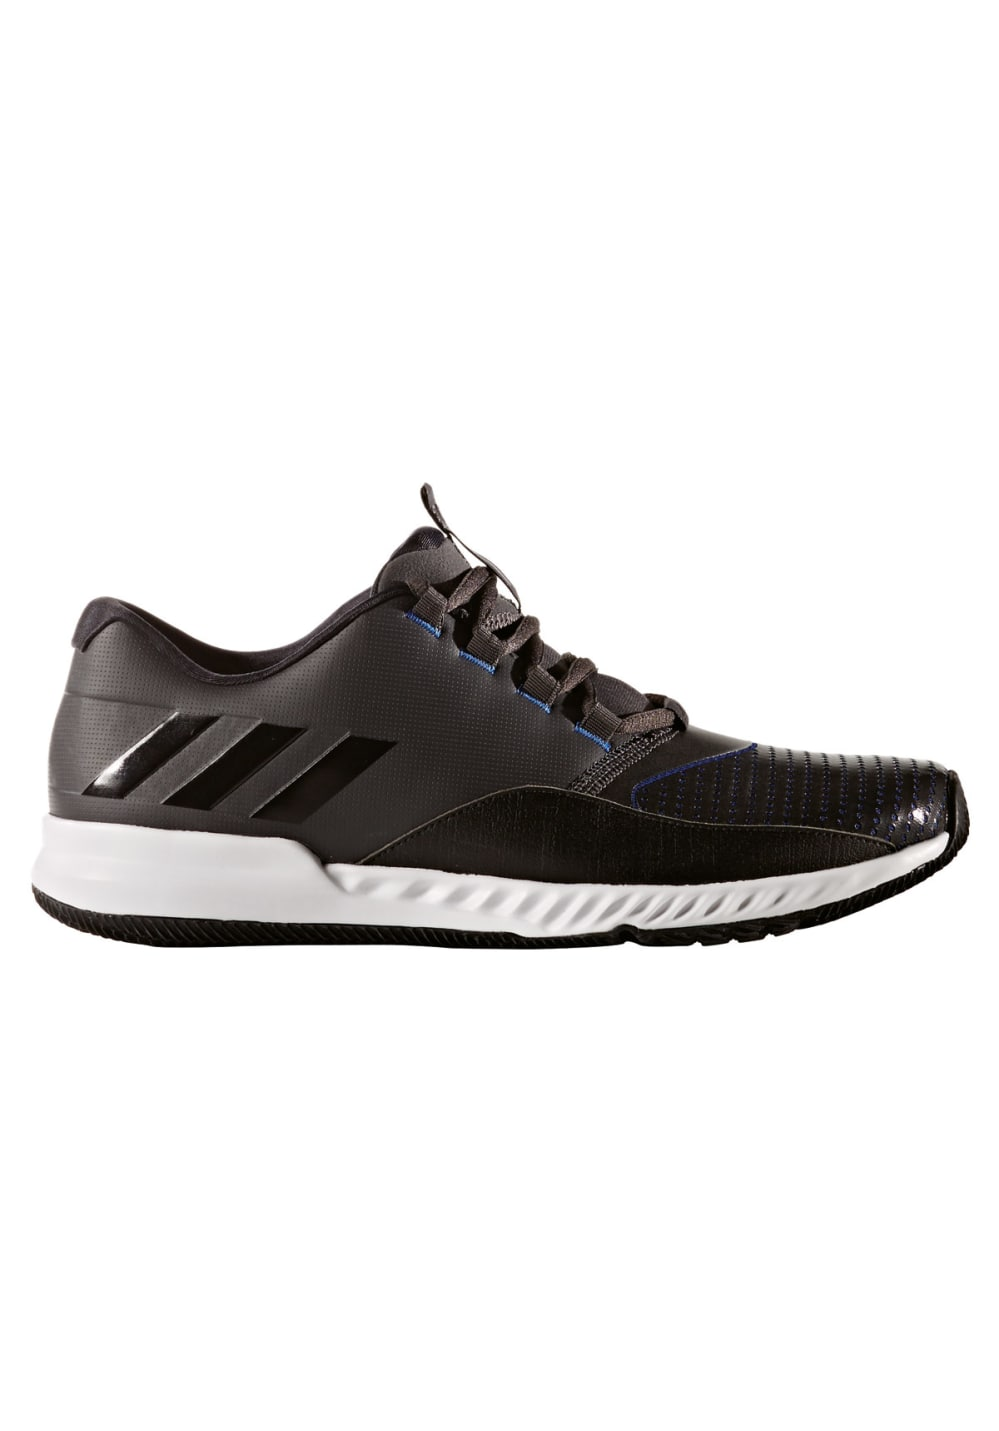 best loved fbf88 7c9c8 Next. adidas. Crazytrain Bounce - Fitness shoes for Men